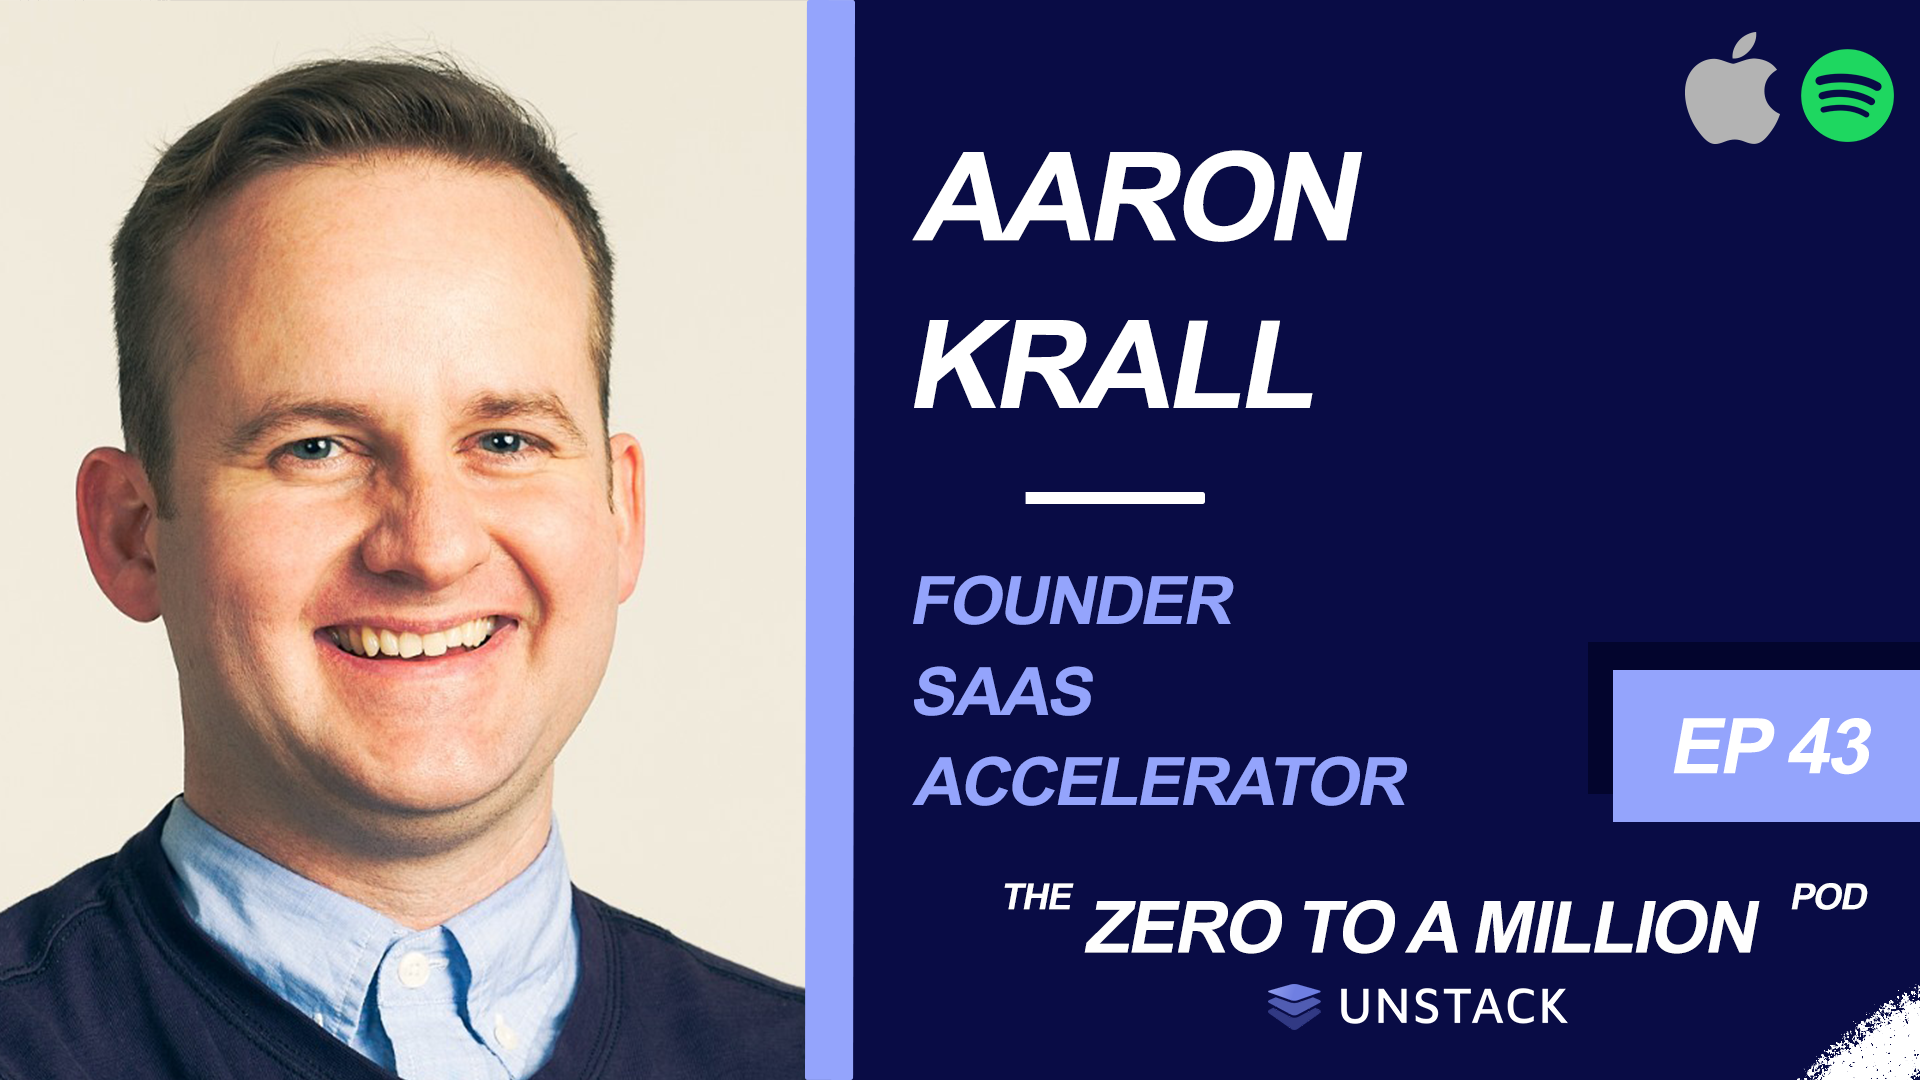 Accelerating SaaS growth with partnerships